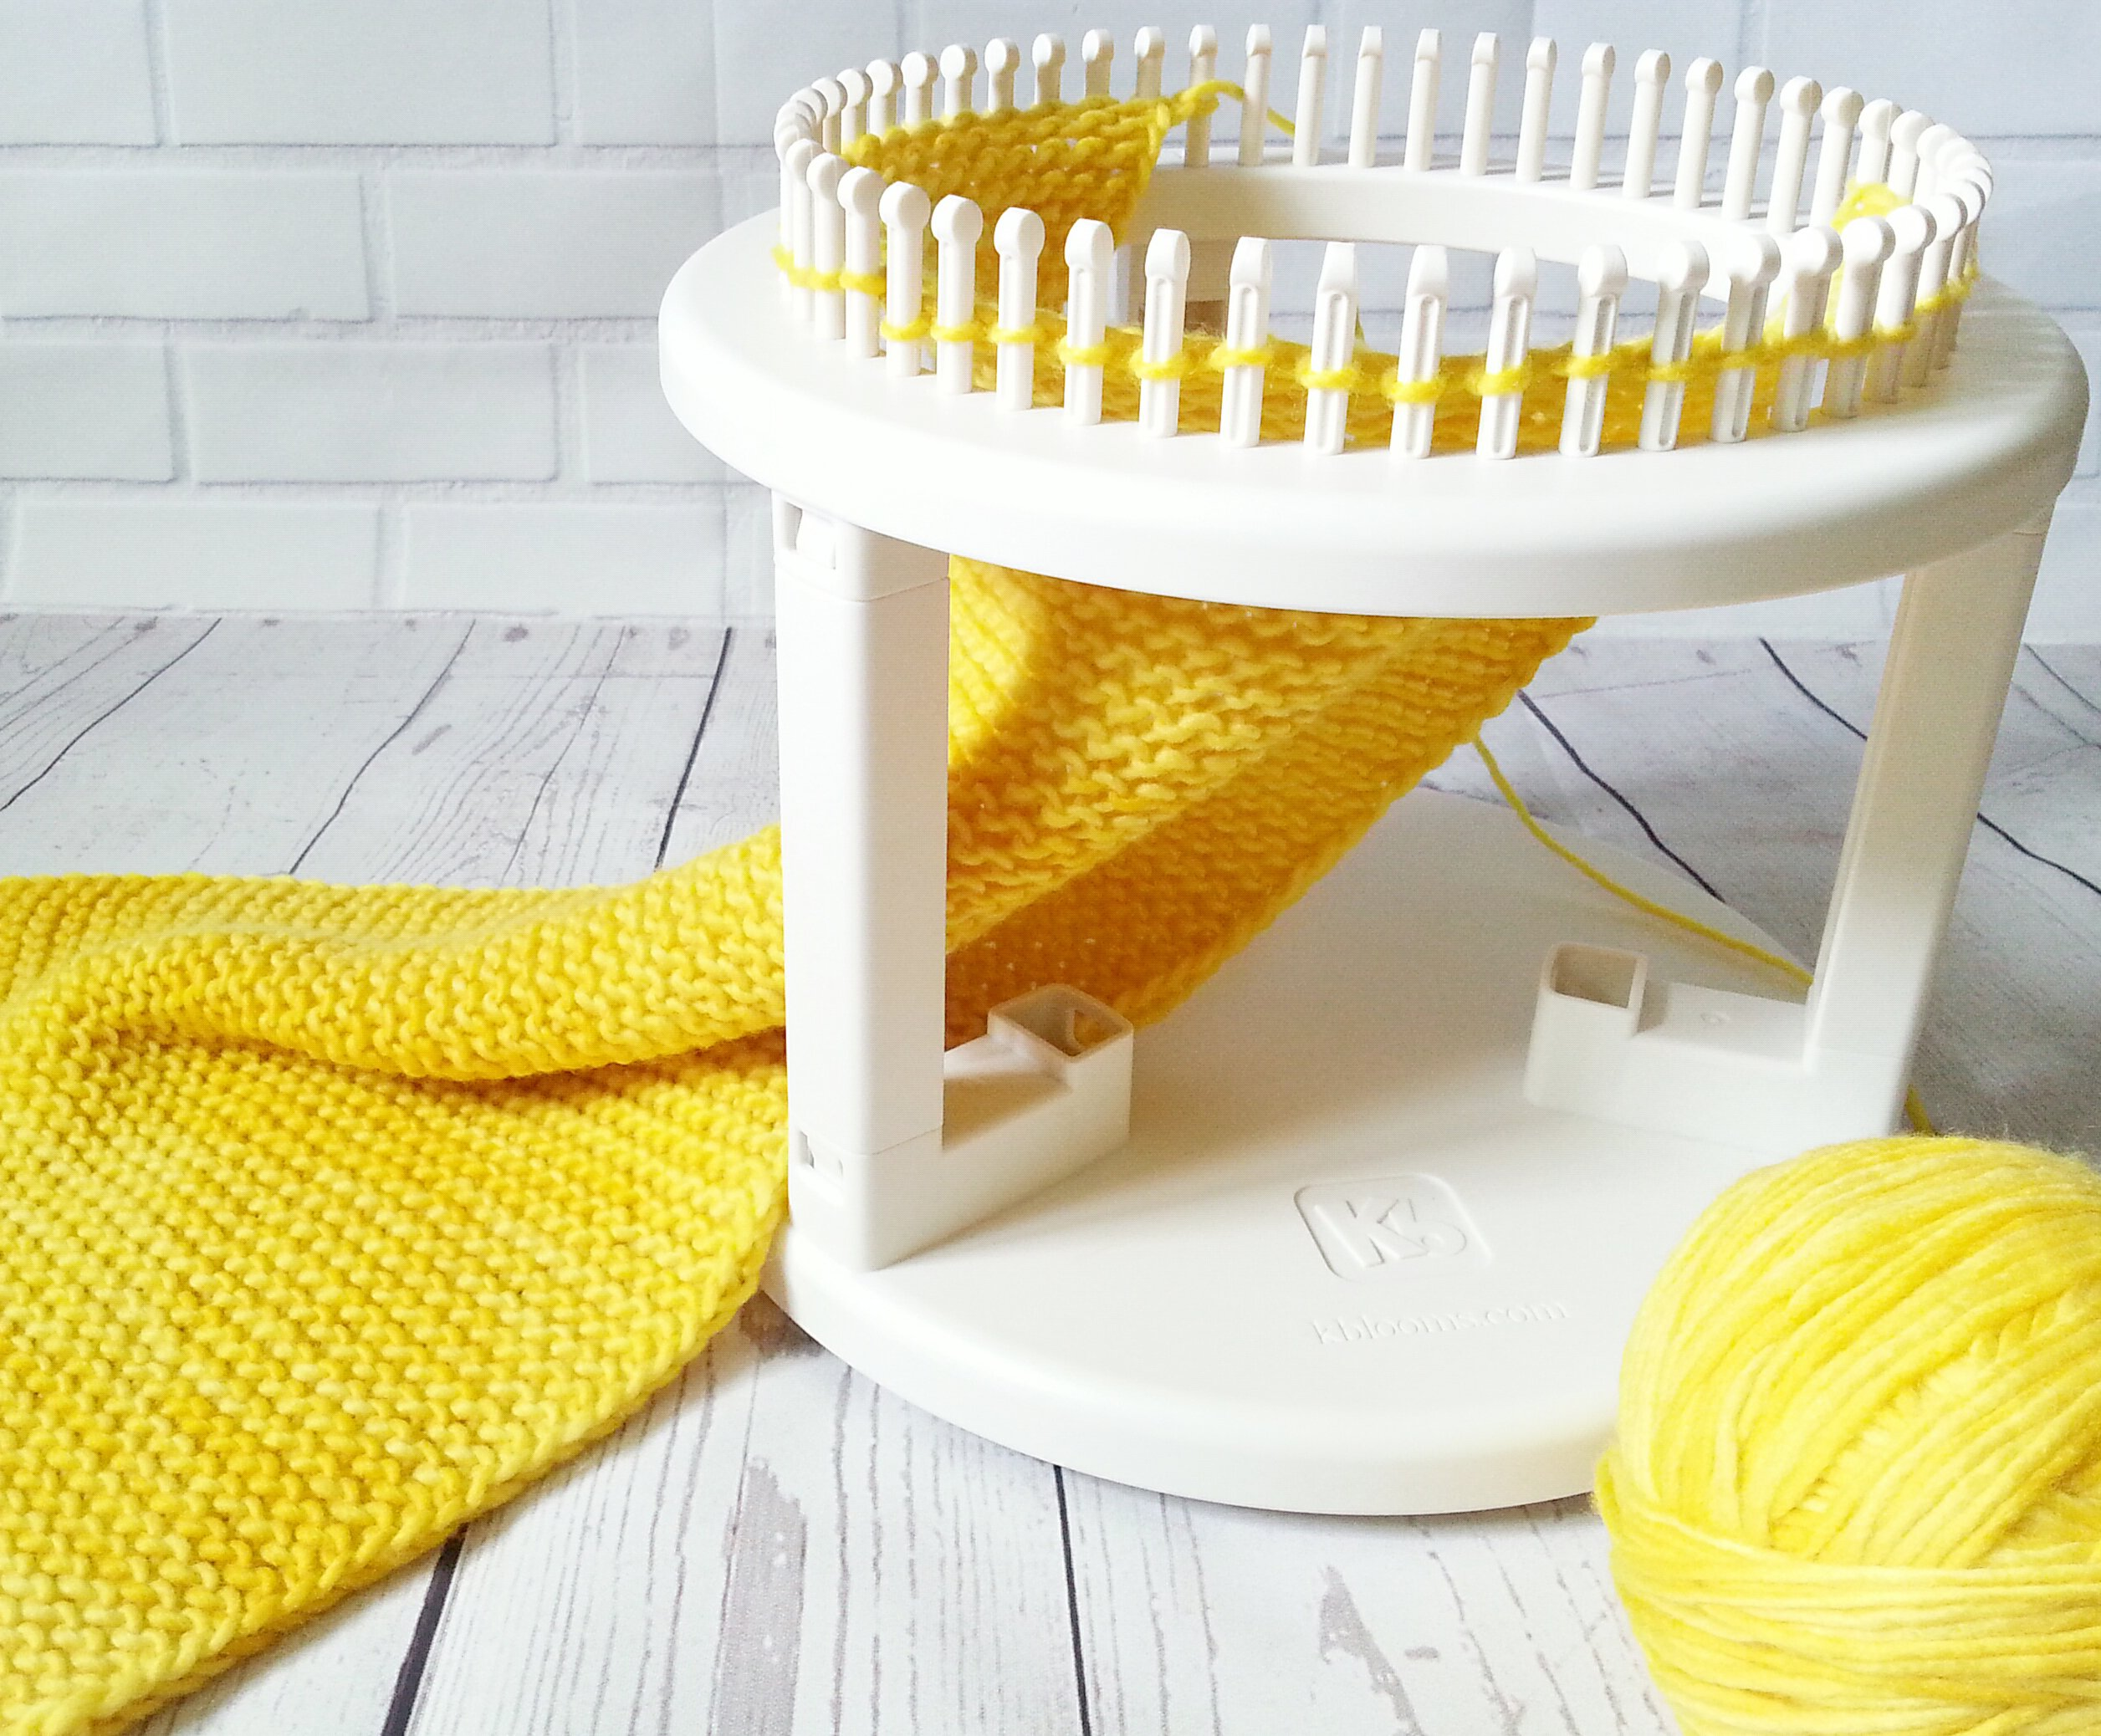 Authentic Knitting Board Rotating Double Knit Loom, Off Off White by Authentic Knitting Board (Image #6)